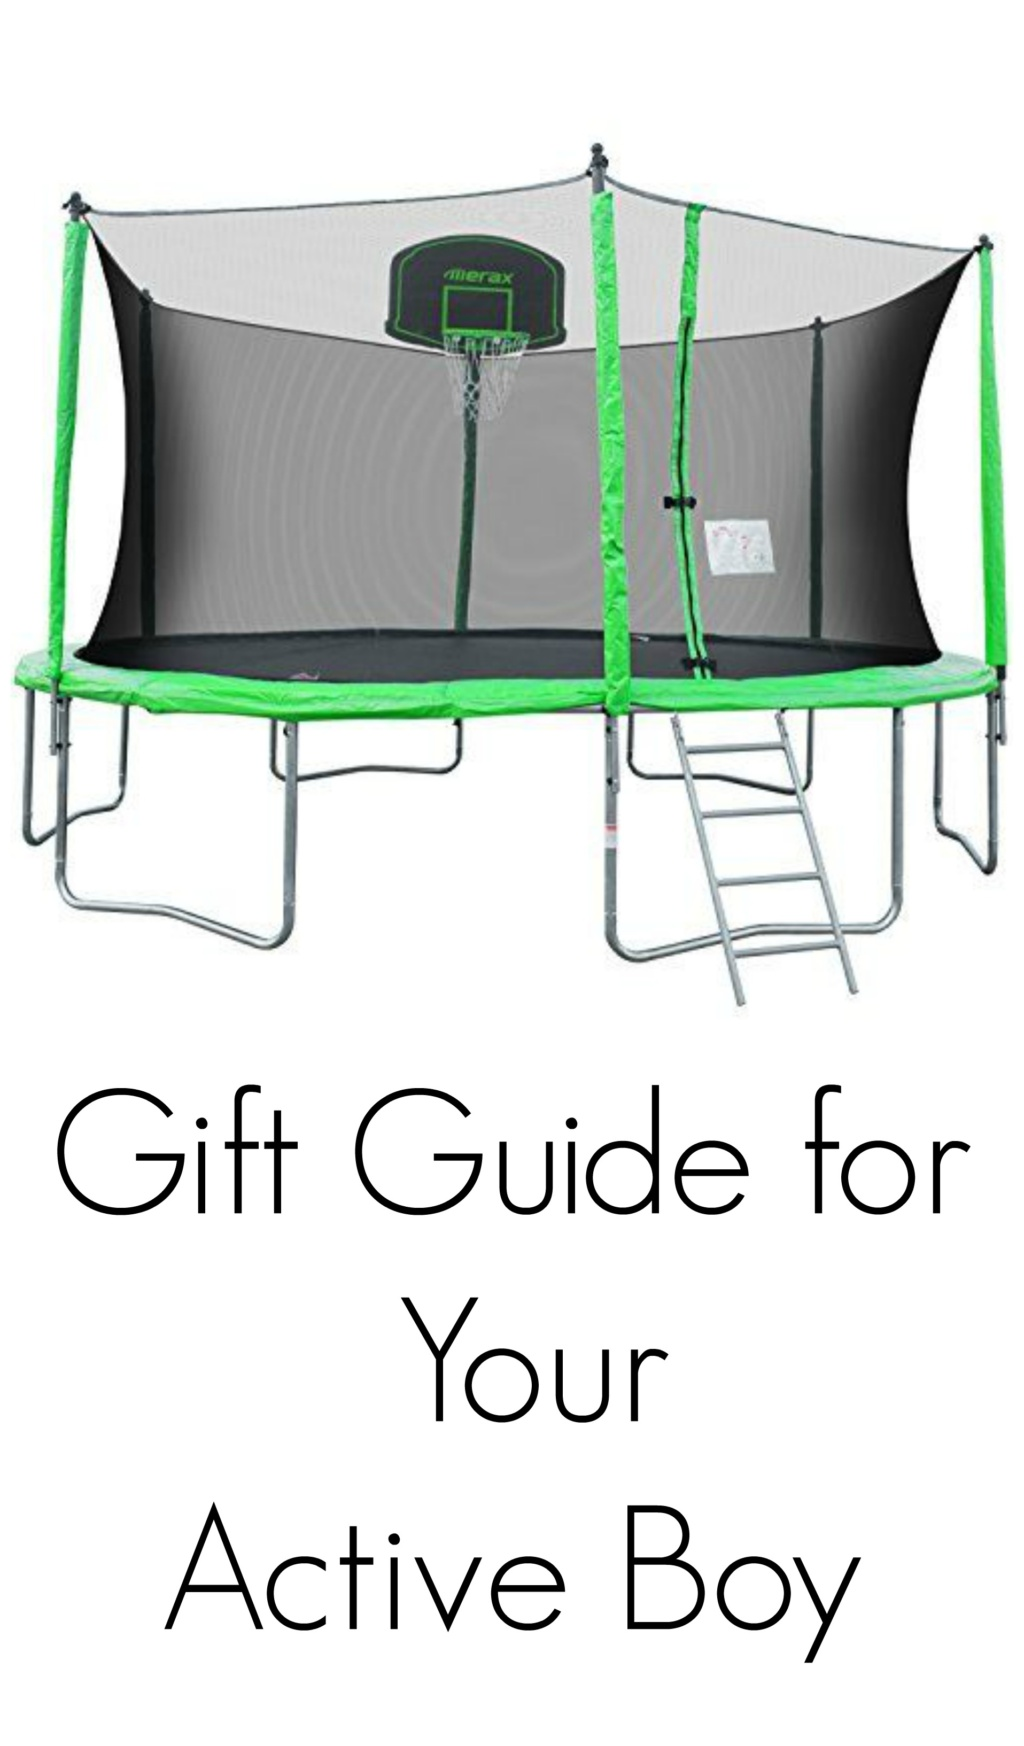 Gift Guide for Your Active Boy